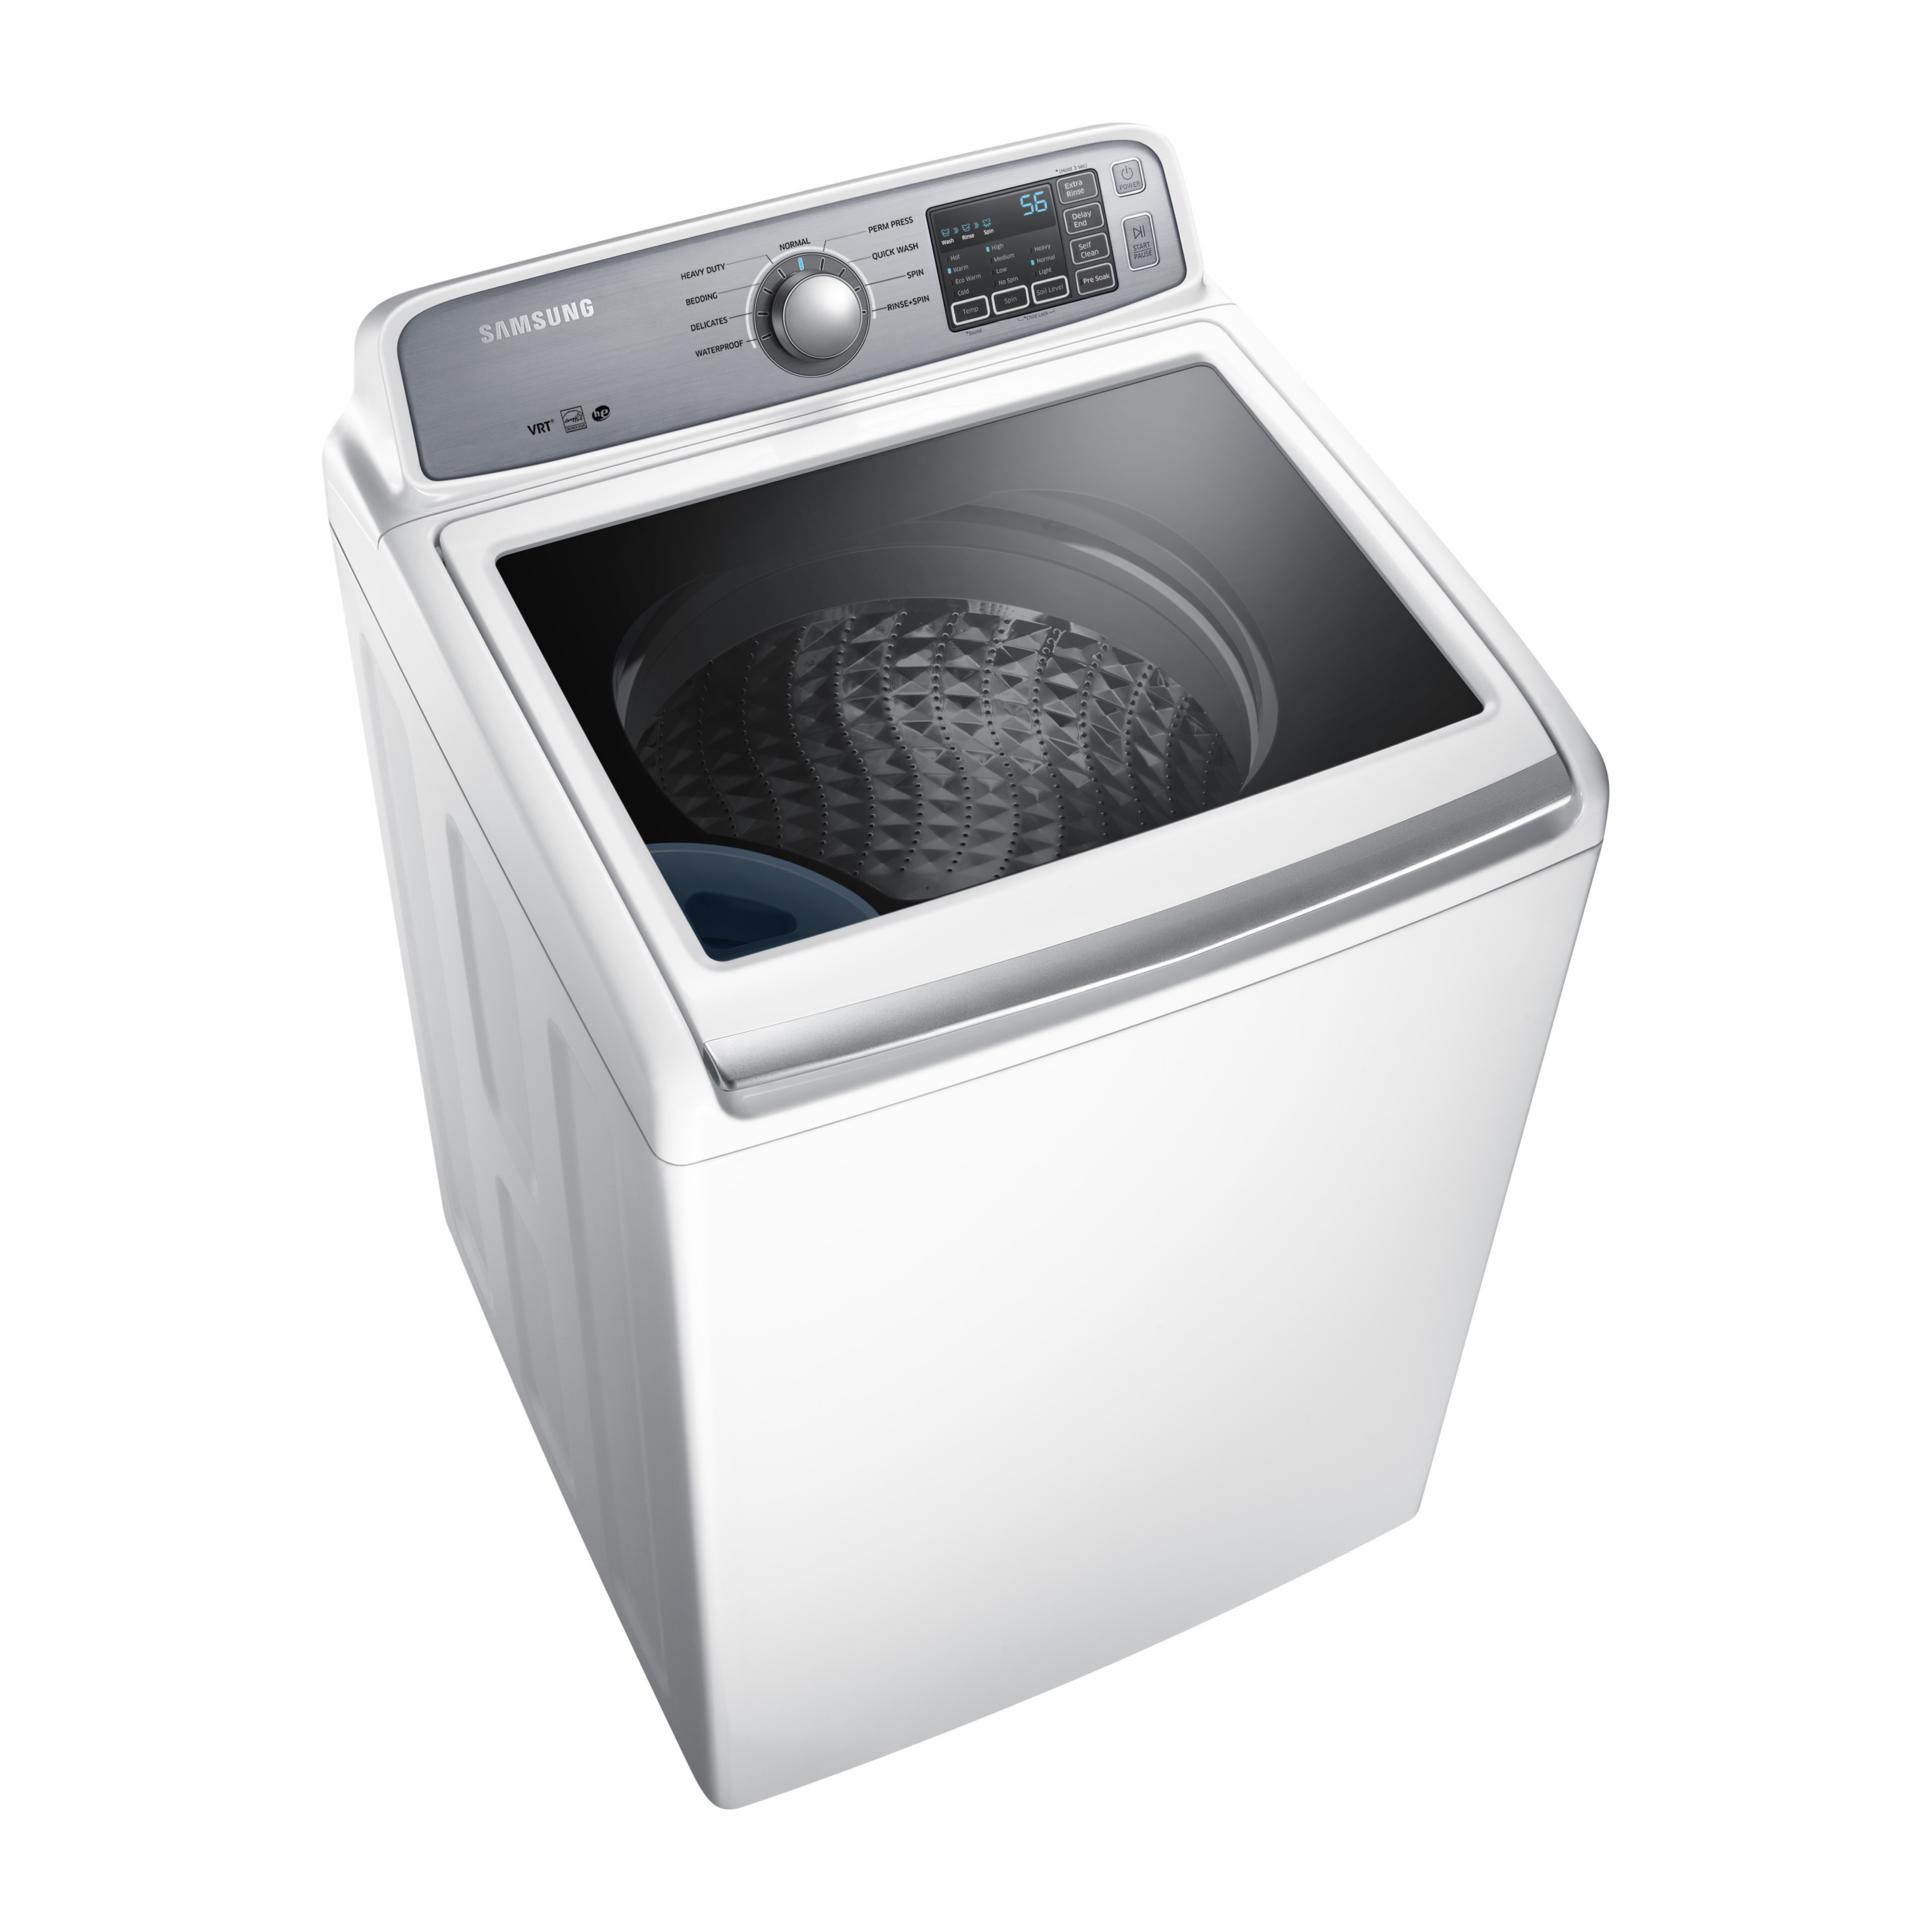 Samsung WA45H7000AW 4.5 cu. ft. Top-Load Washer - White